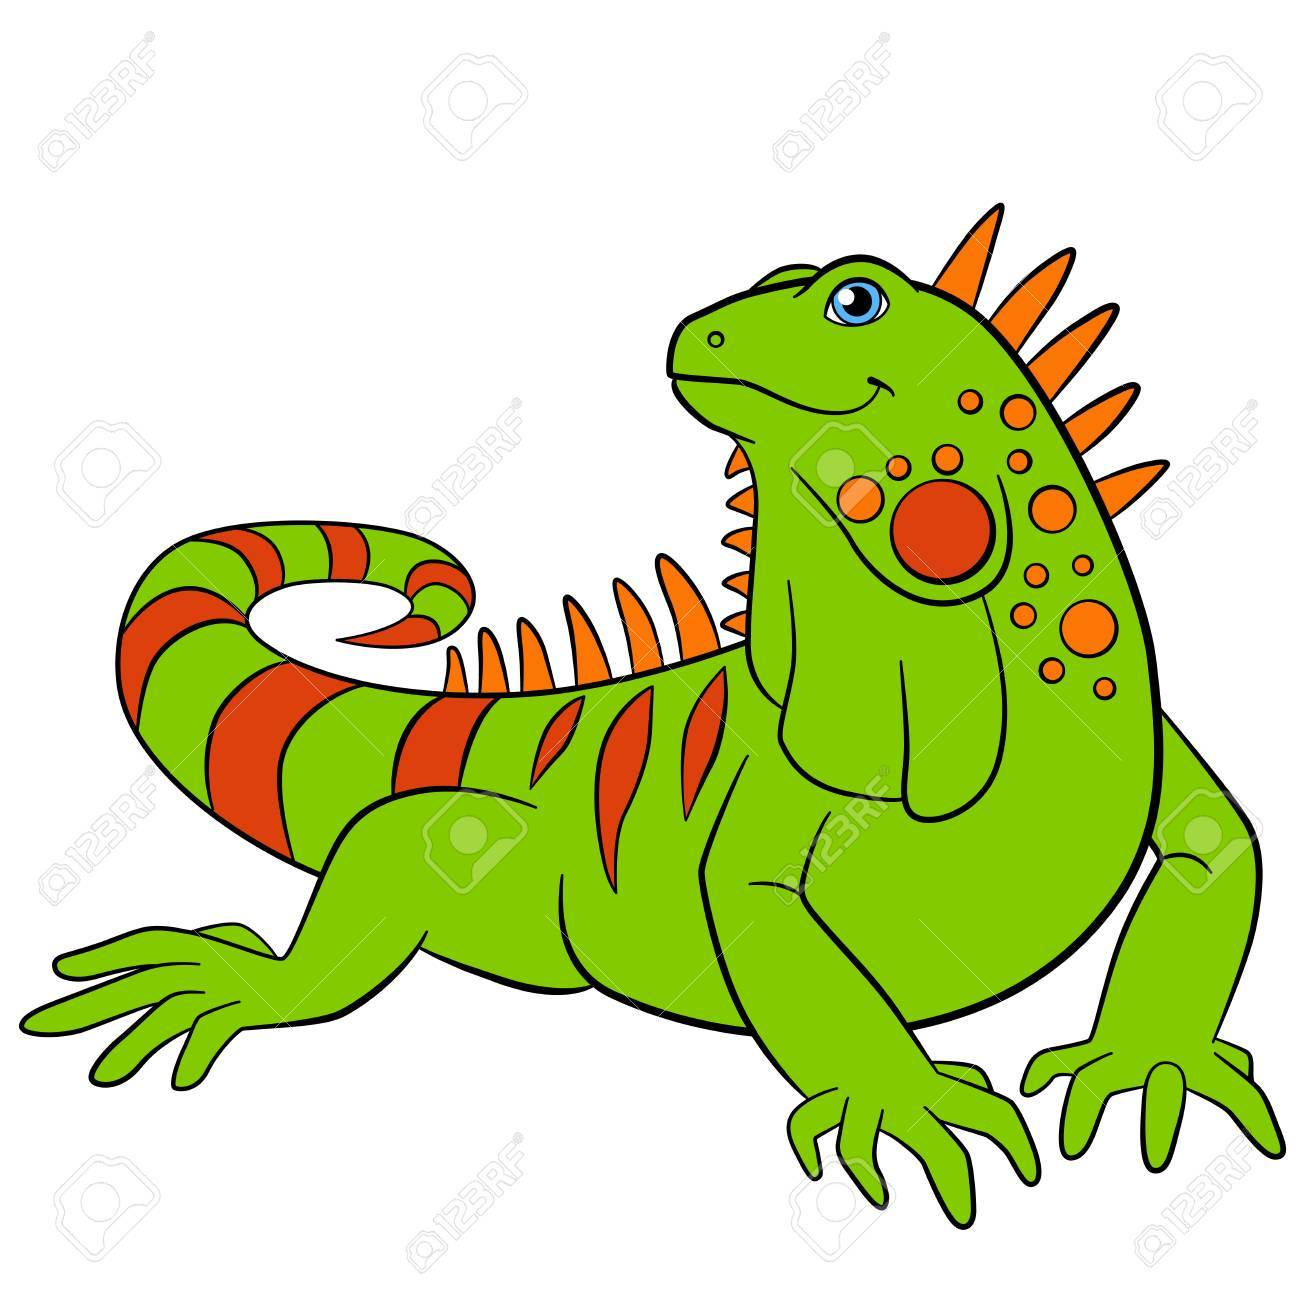 Cute Green Iguana Sits And Smiles. Stock-Cute green iguana sits and smiles. Stock Vector - 62894630-7